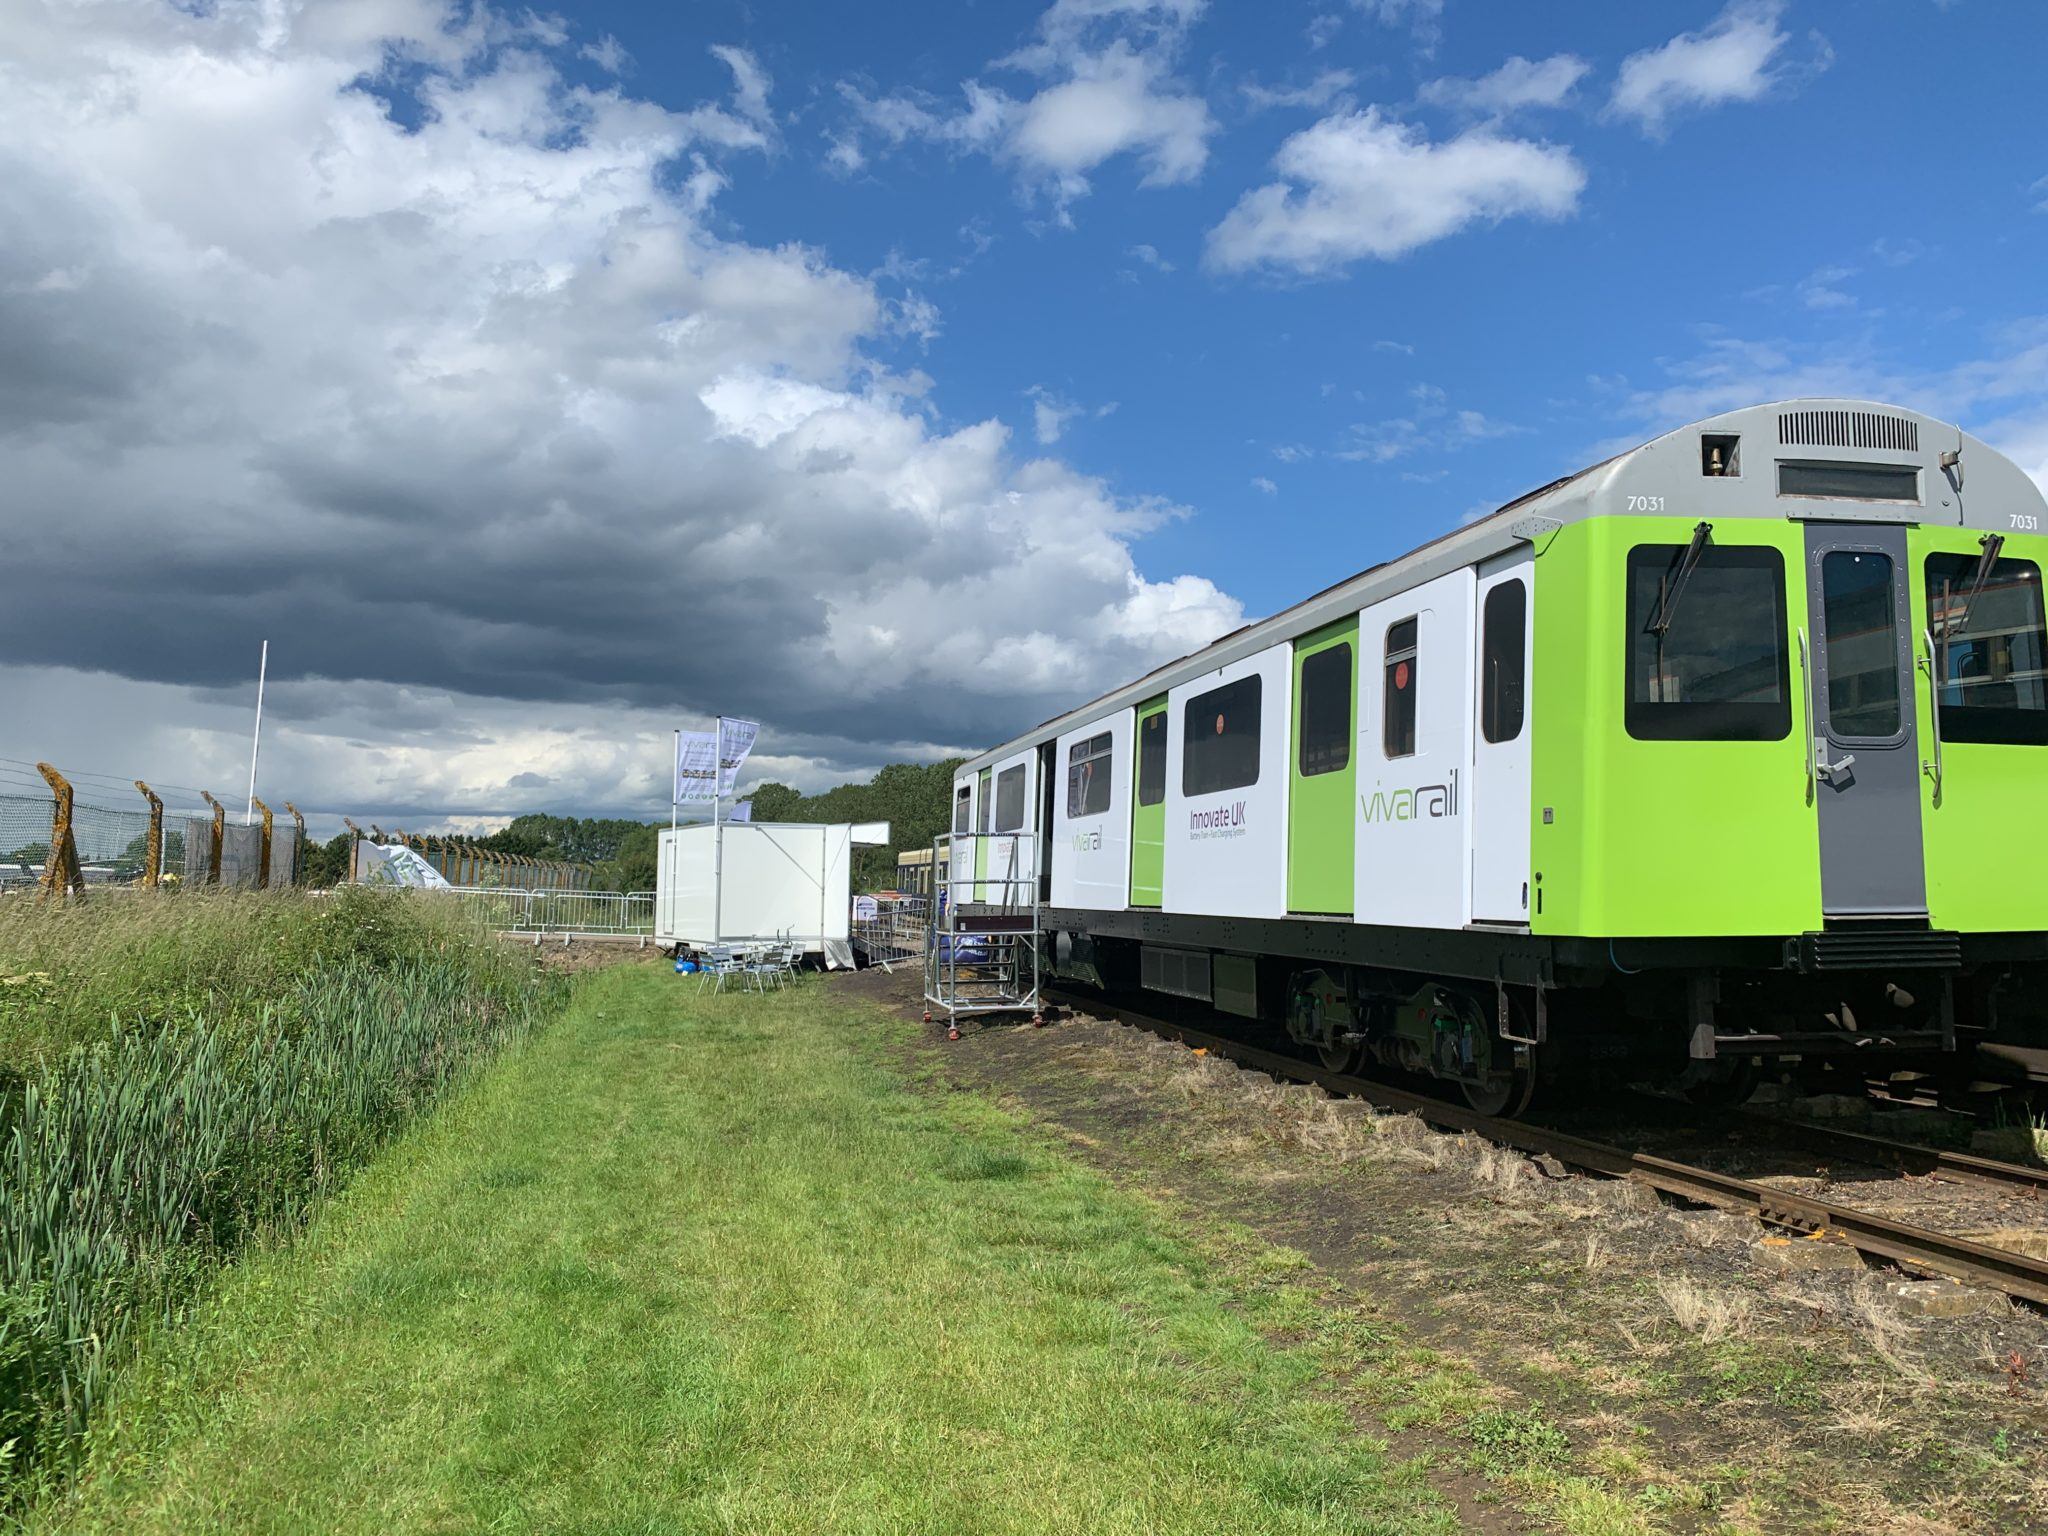 Vivarail battery train at Rail Live 2019